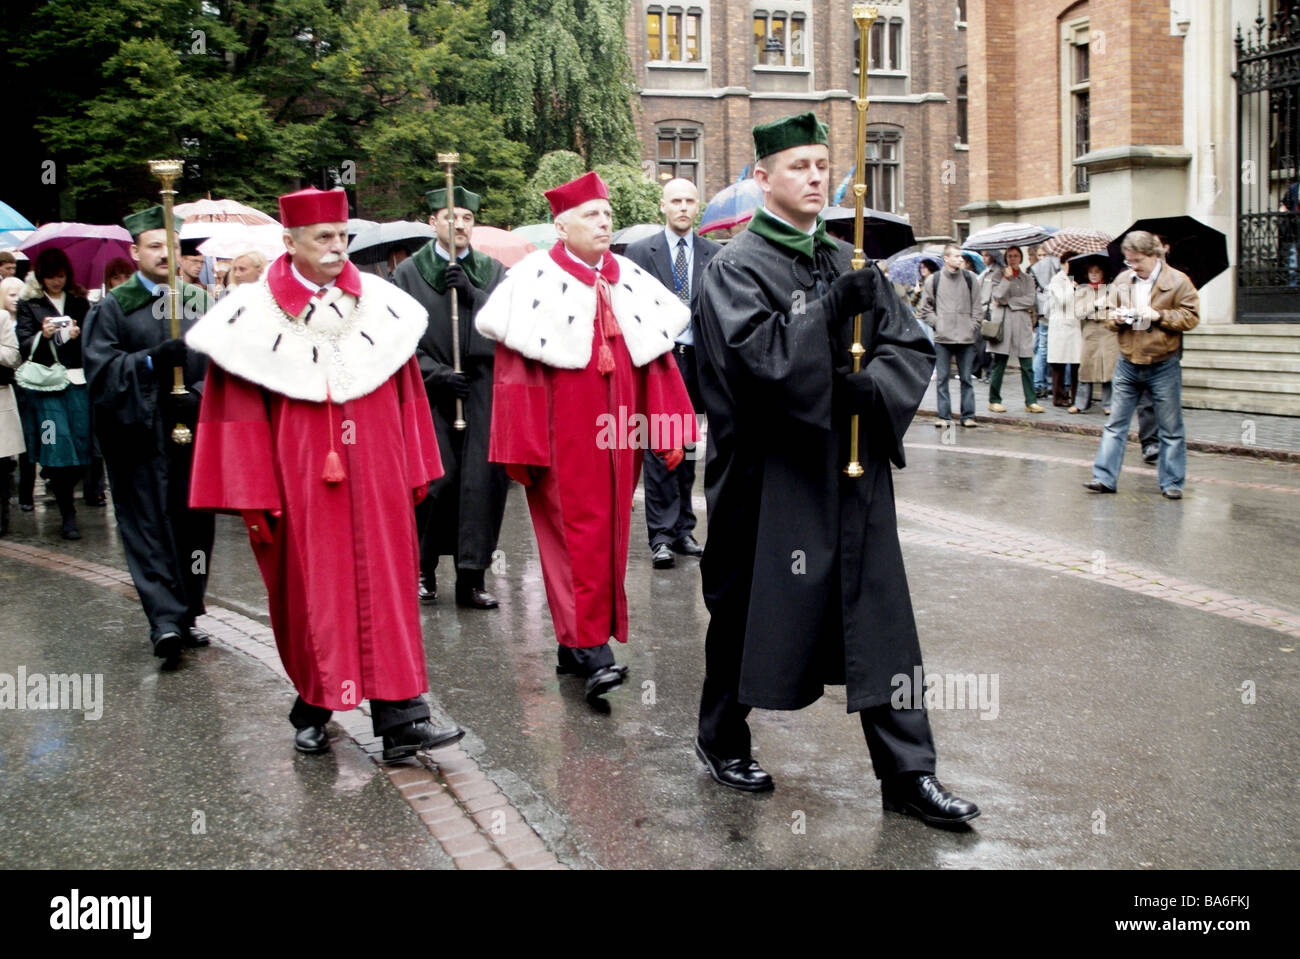 Poland Cracow models investiture teaching-strengths no release only editorially festively people group move move - Stock Image